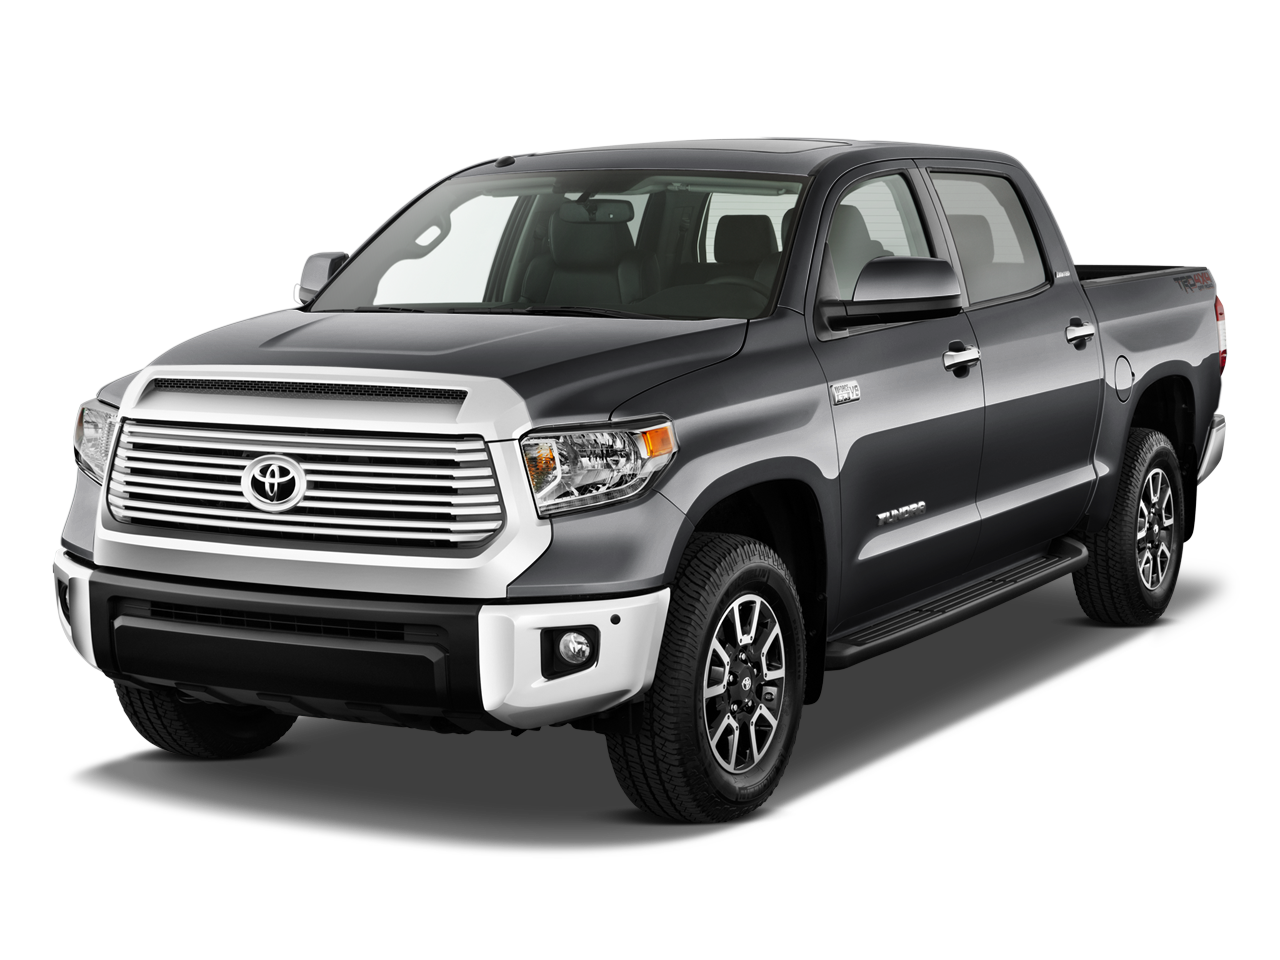 2014 tundra 1794 owners manual autos post. Black Bedroom Furniture Sets. Home Design Ideas